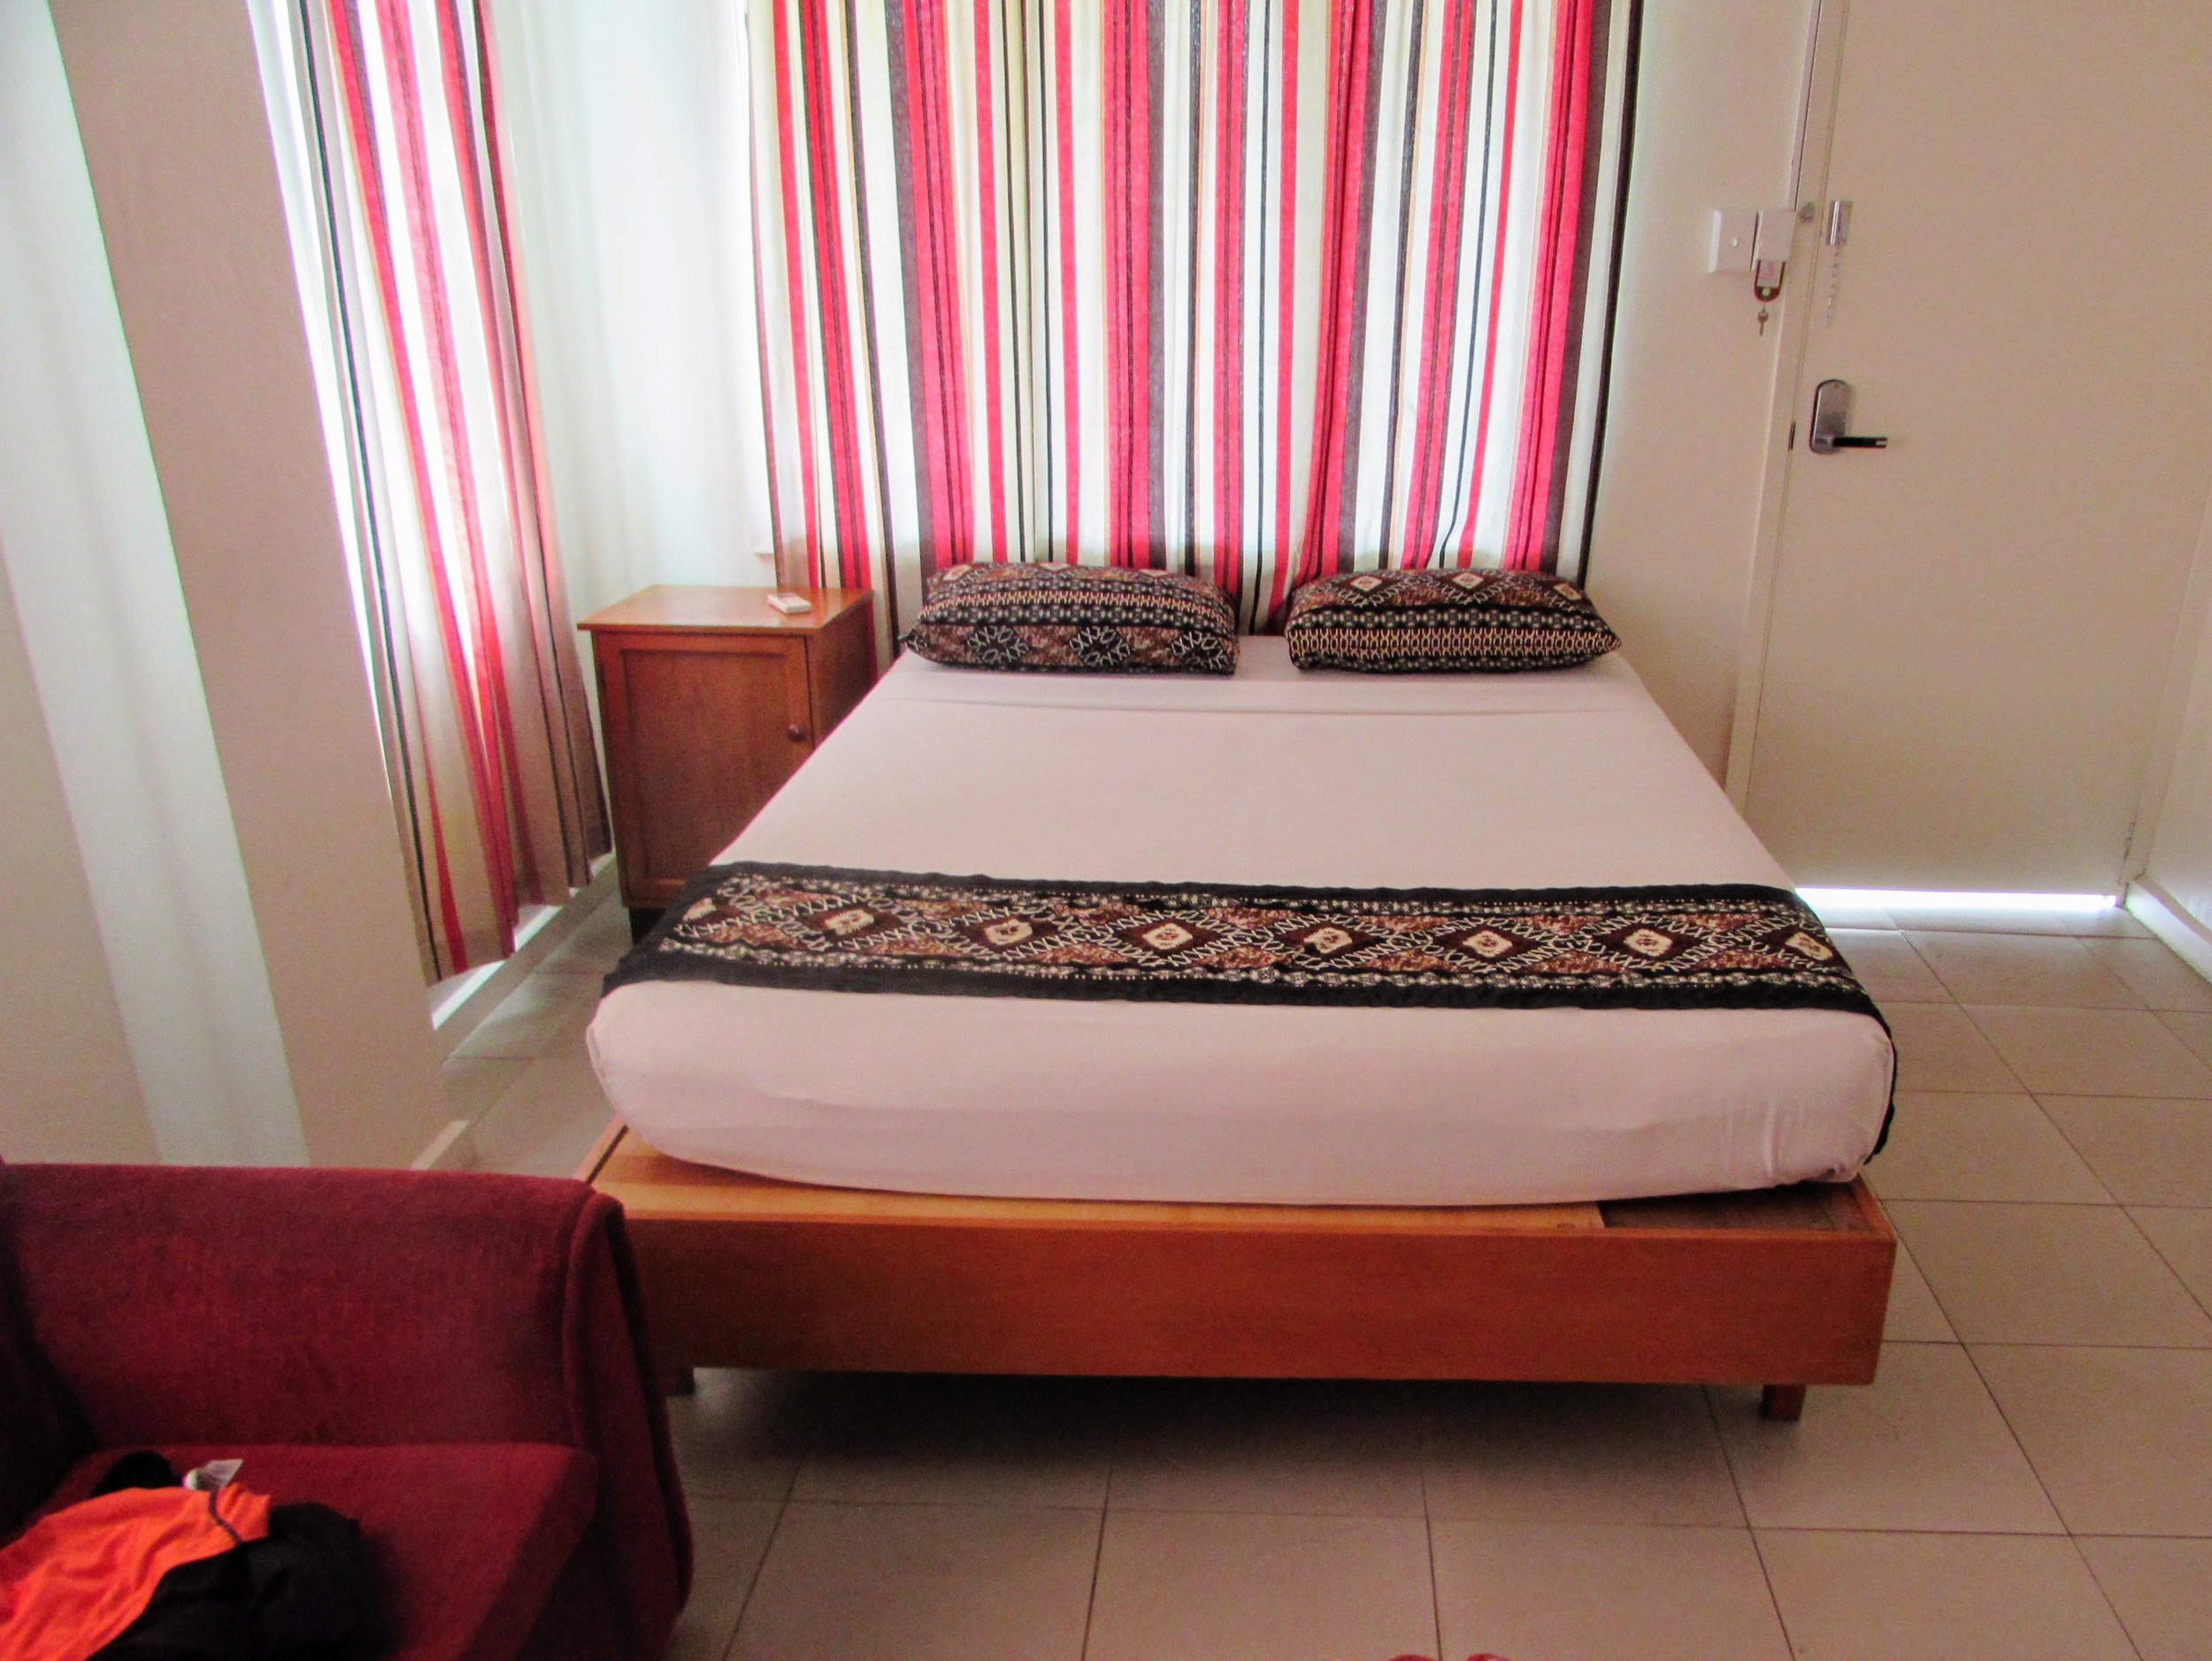 Our bed in Nadi which only looked perfectly innocent and otherwise clean.   Lies.